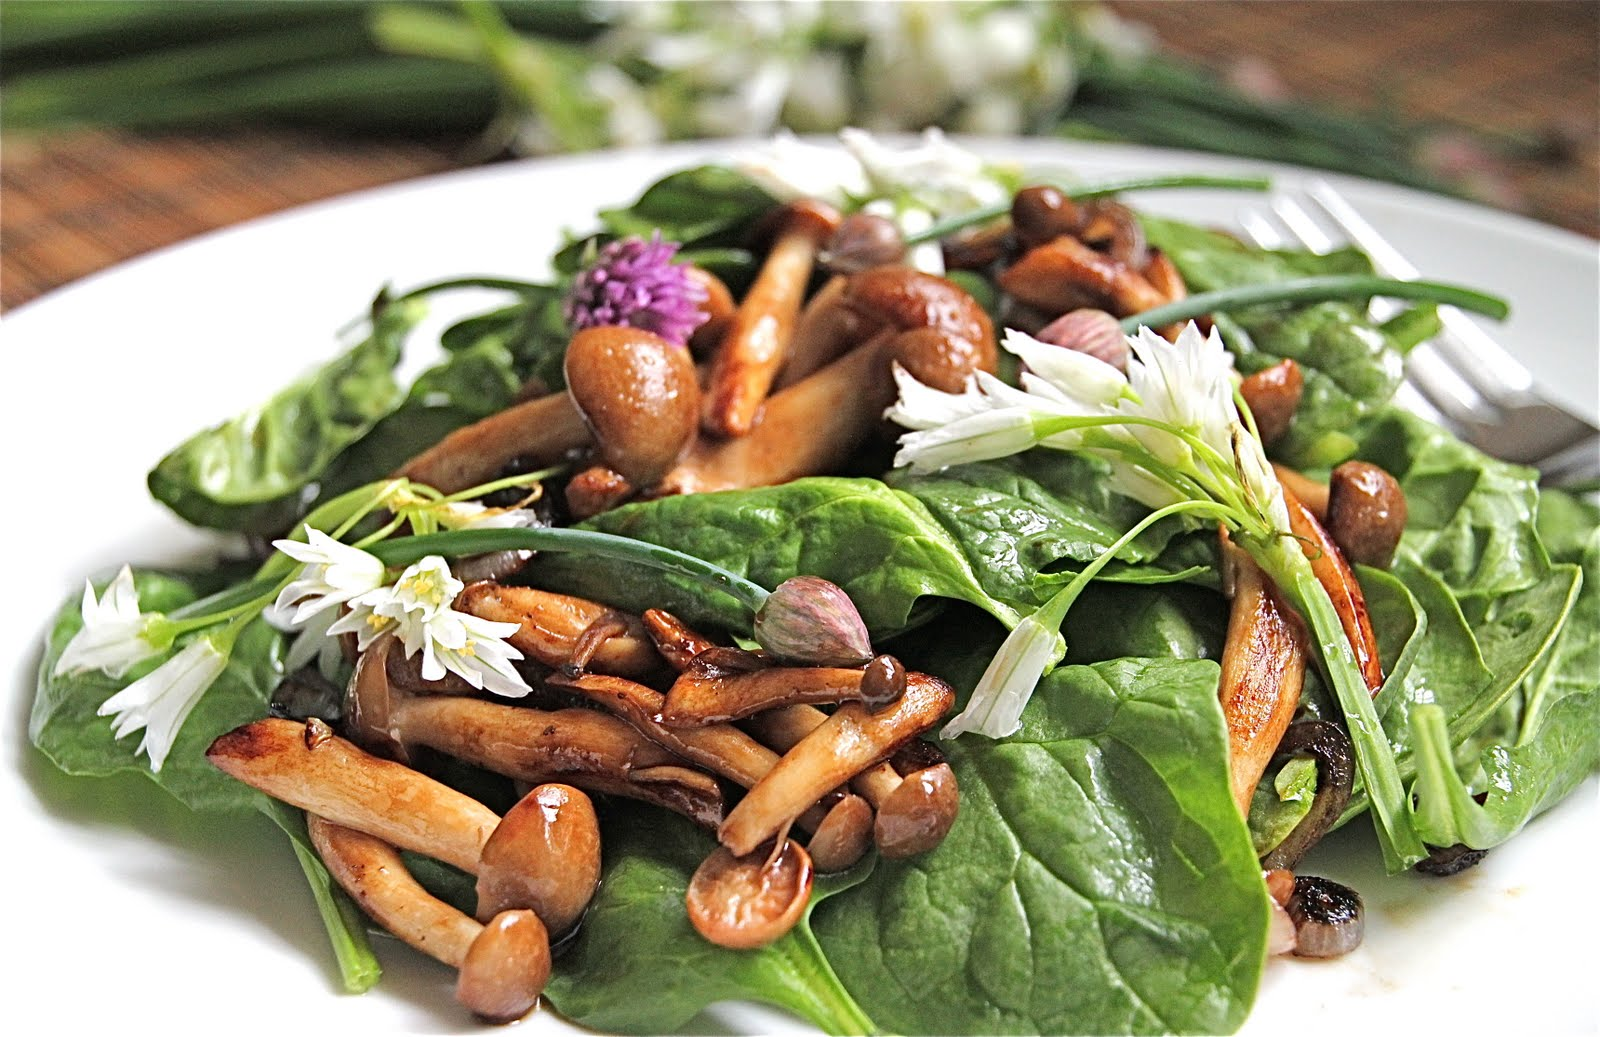 Warm Mushroom Spinach Salad with Fresh Arugula Flower and Chives